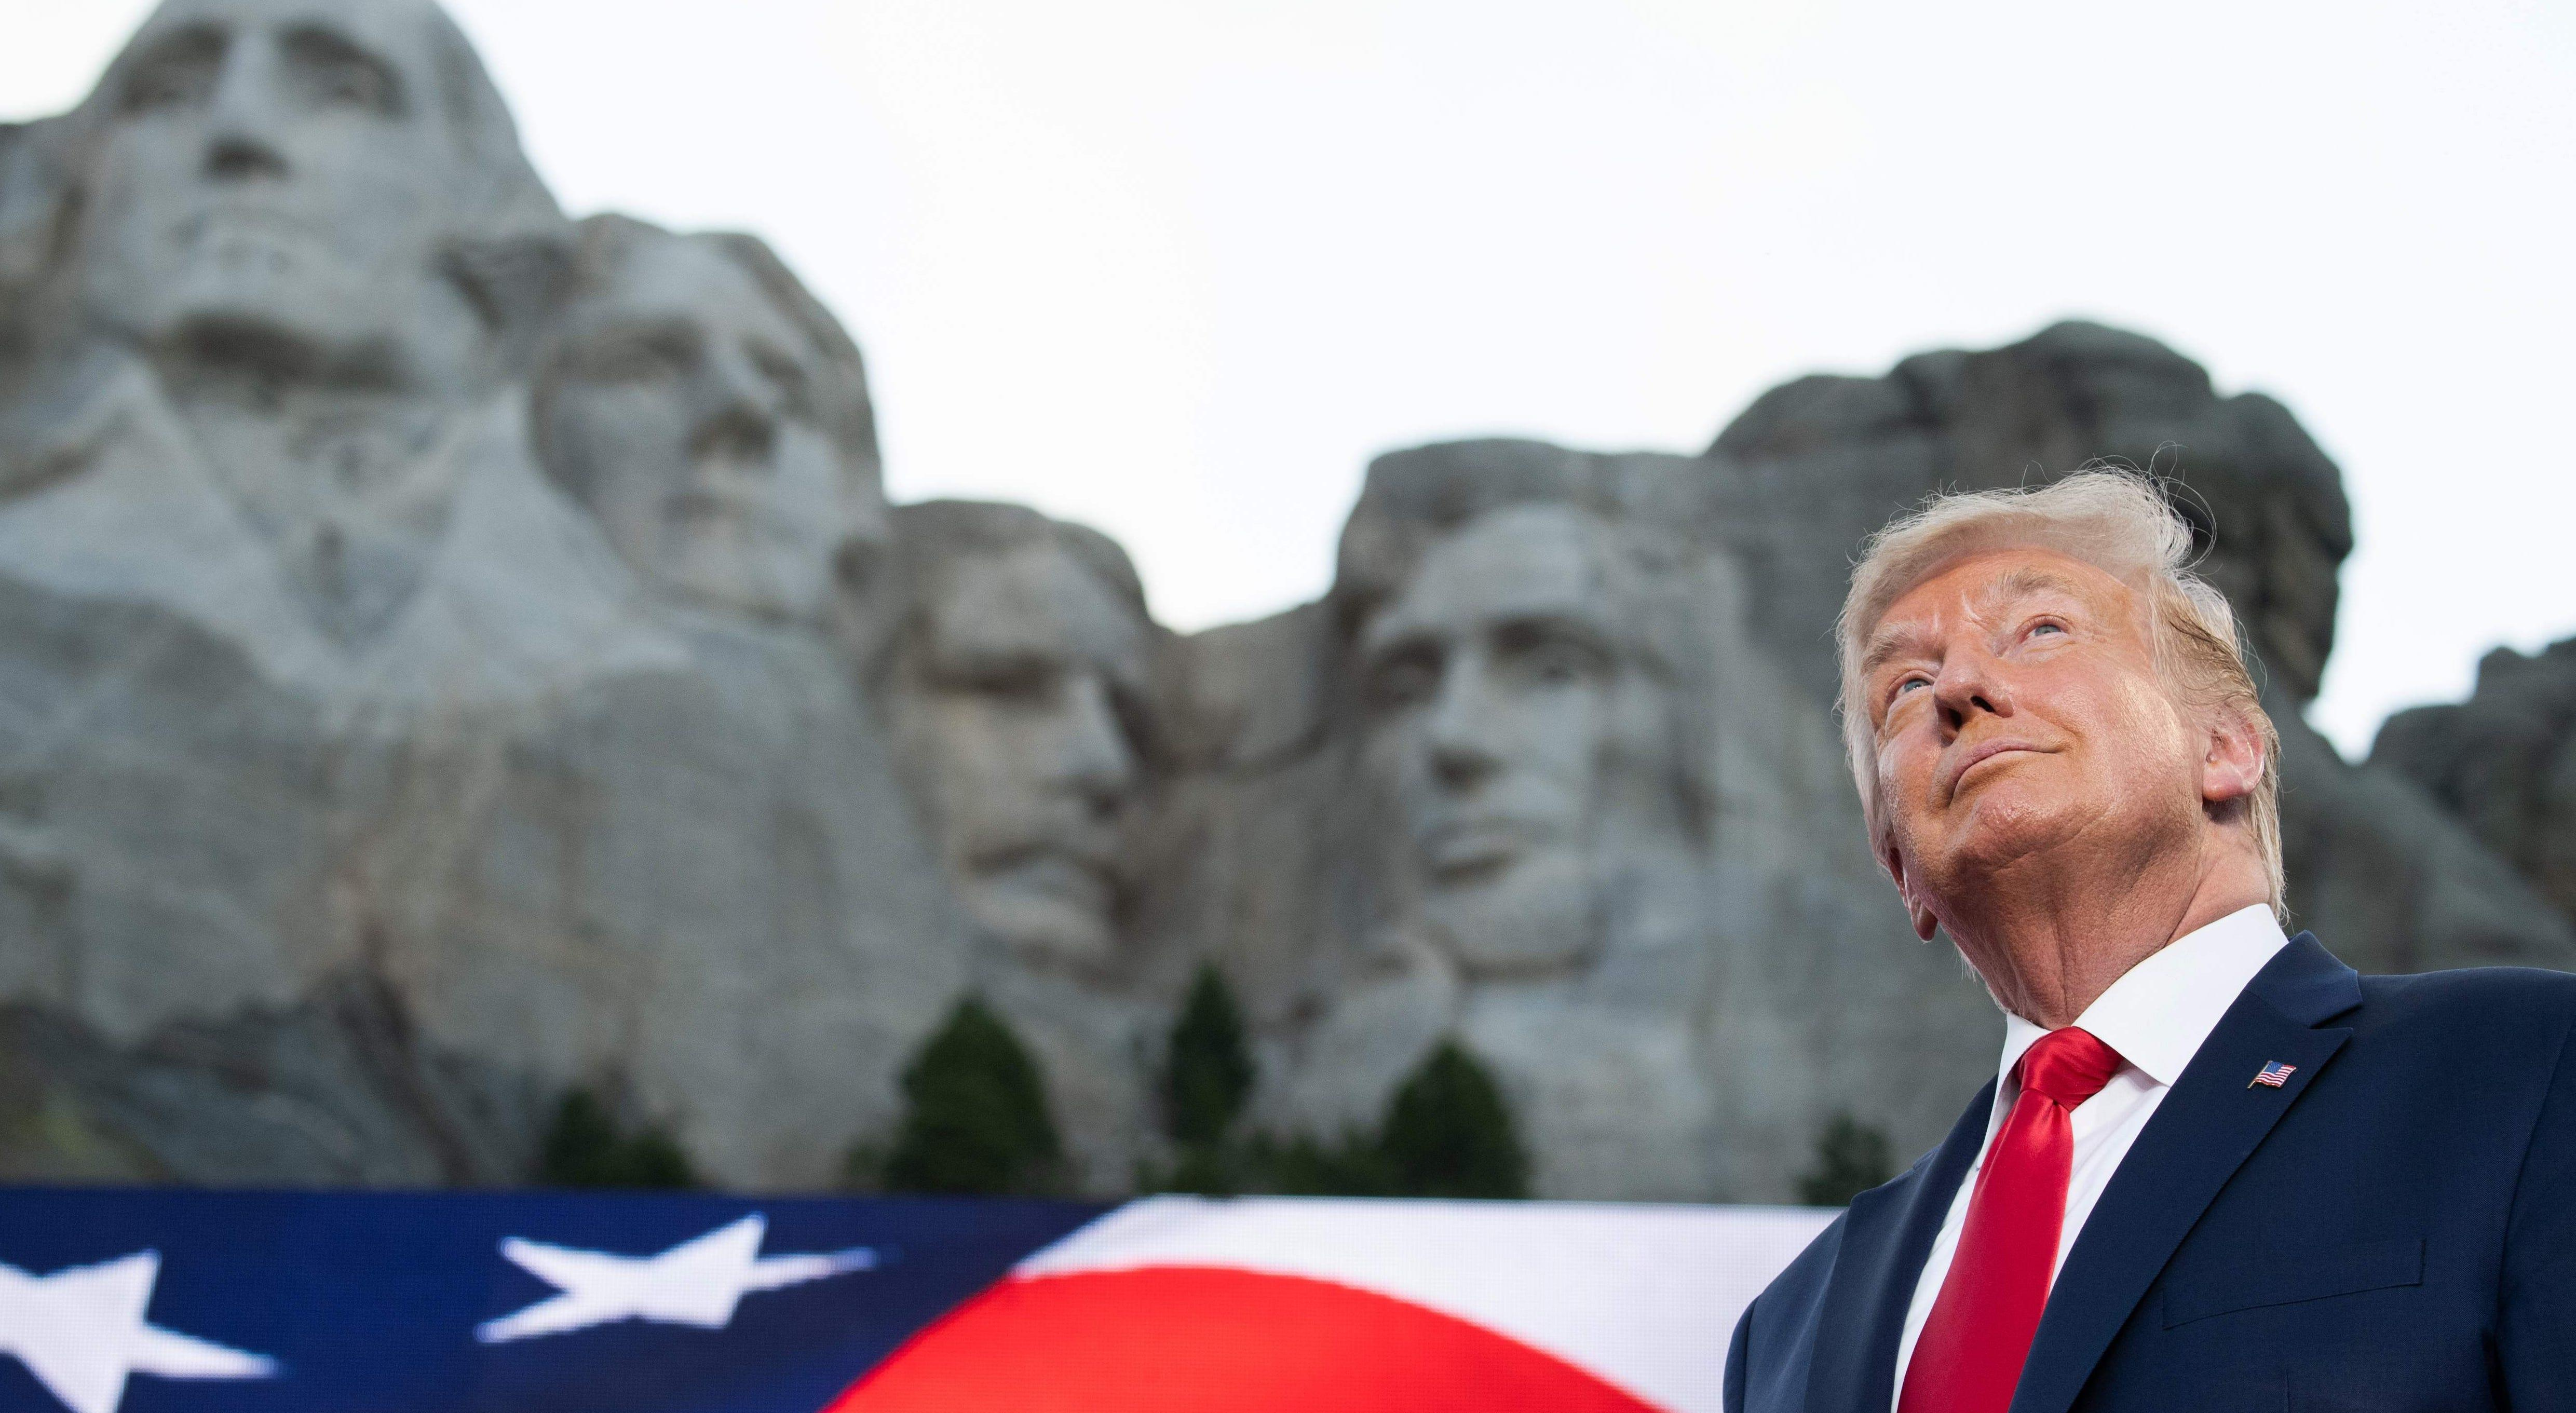 Trump says adding his face to Mount Rushmore would be a 'good idea.' It would likely be impossible